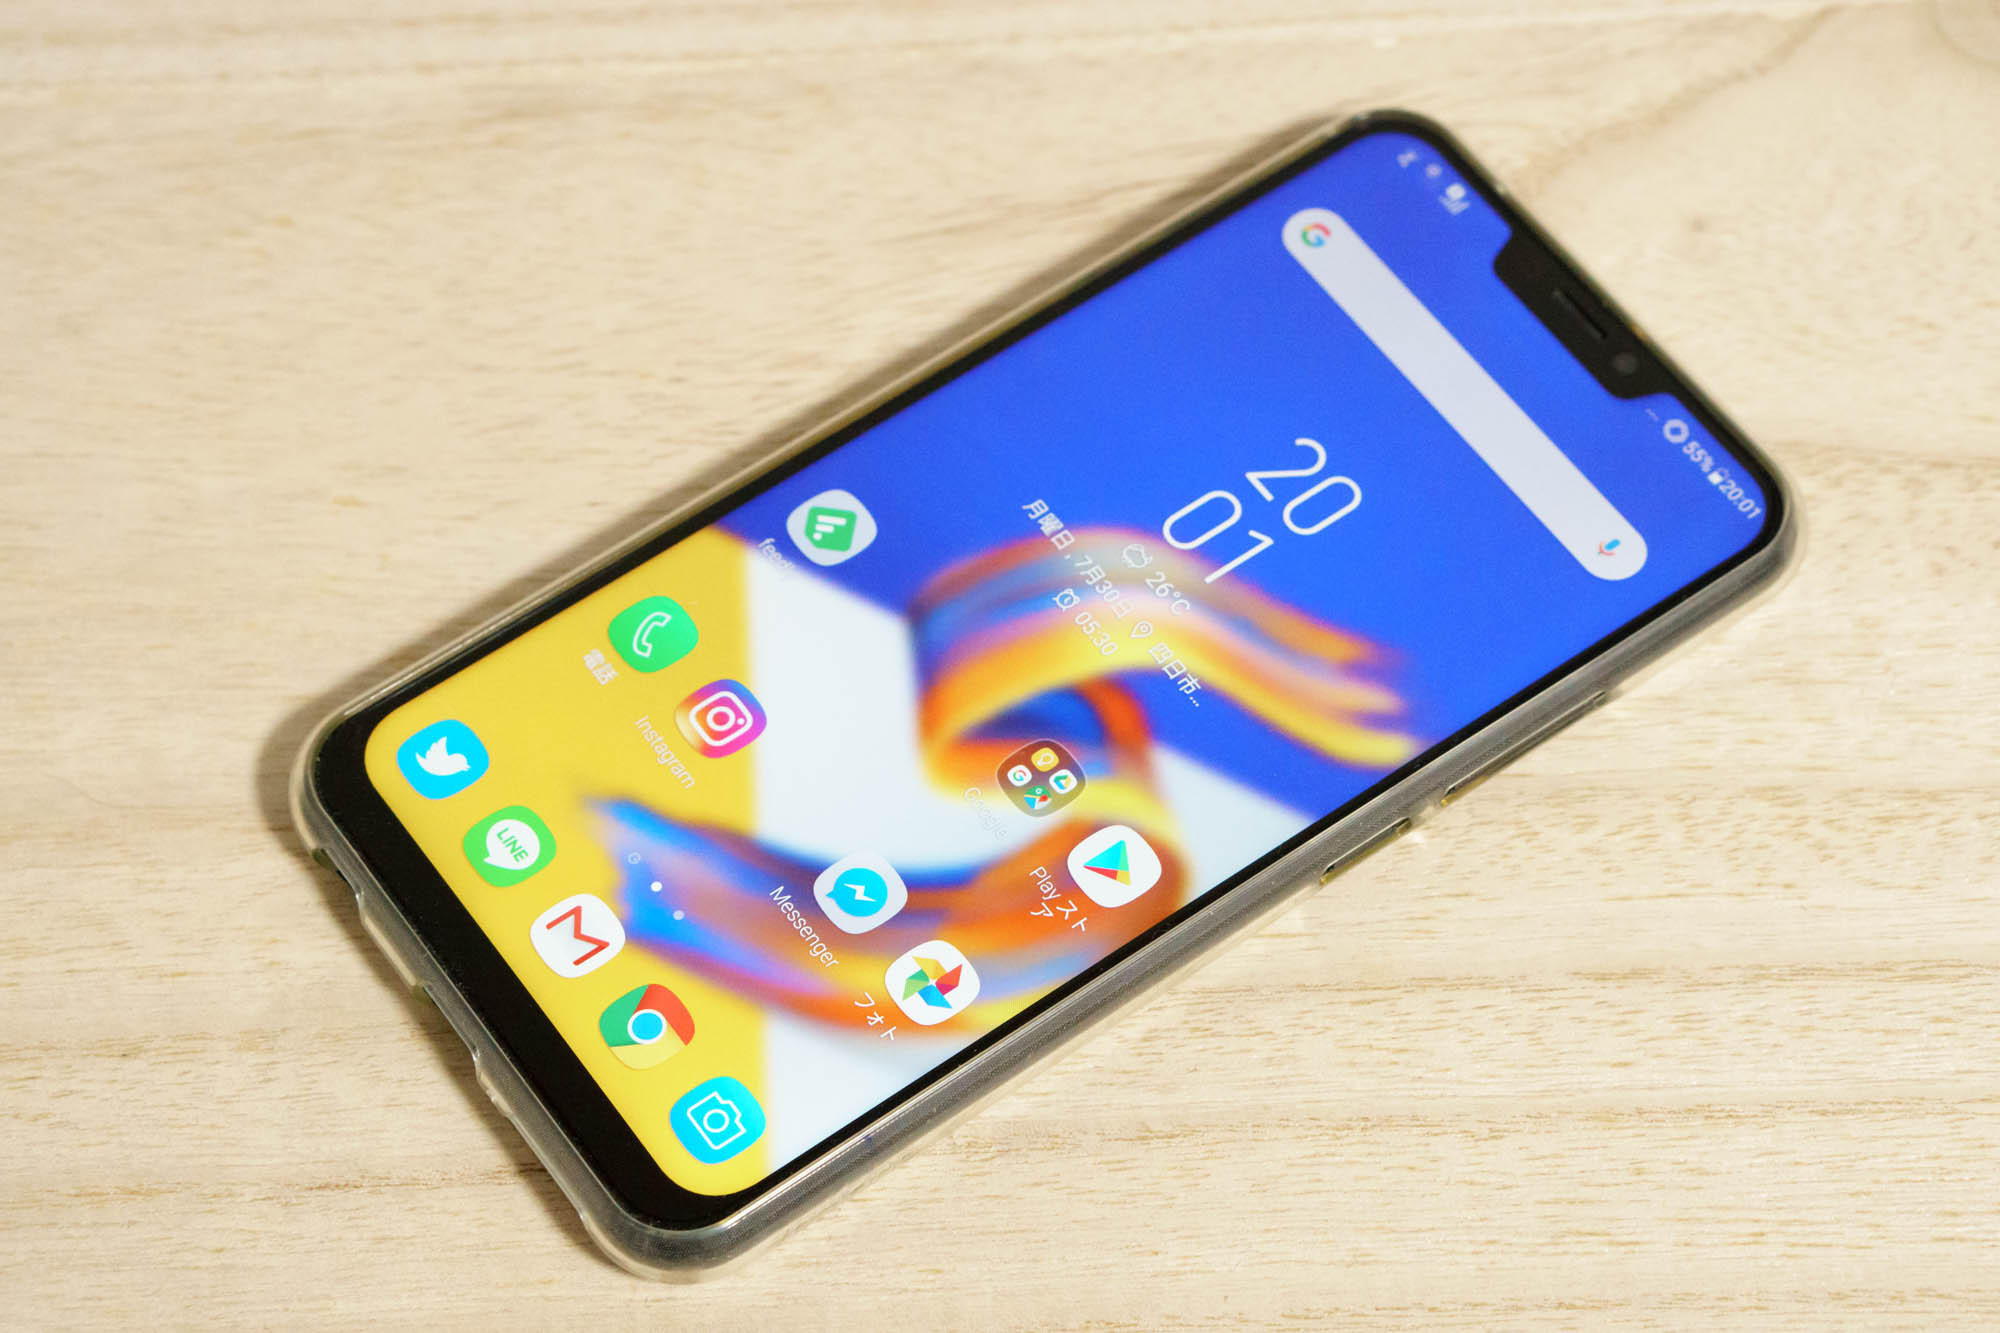 android9 マナー モード